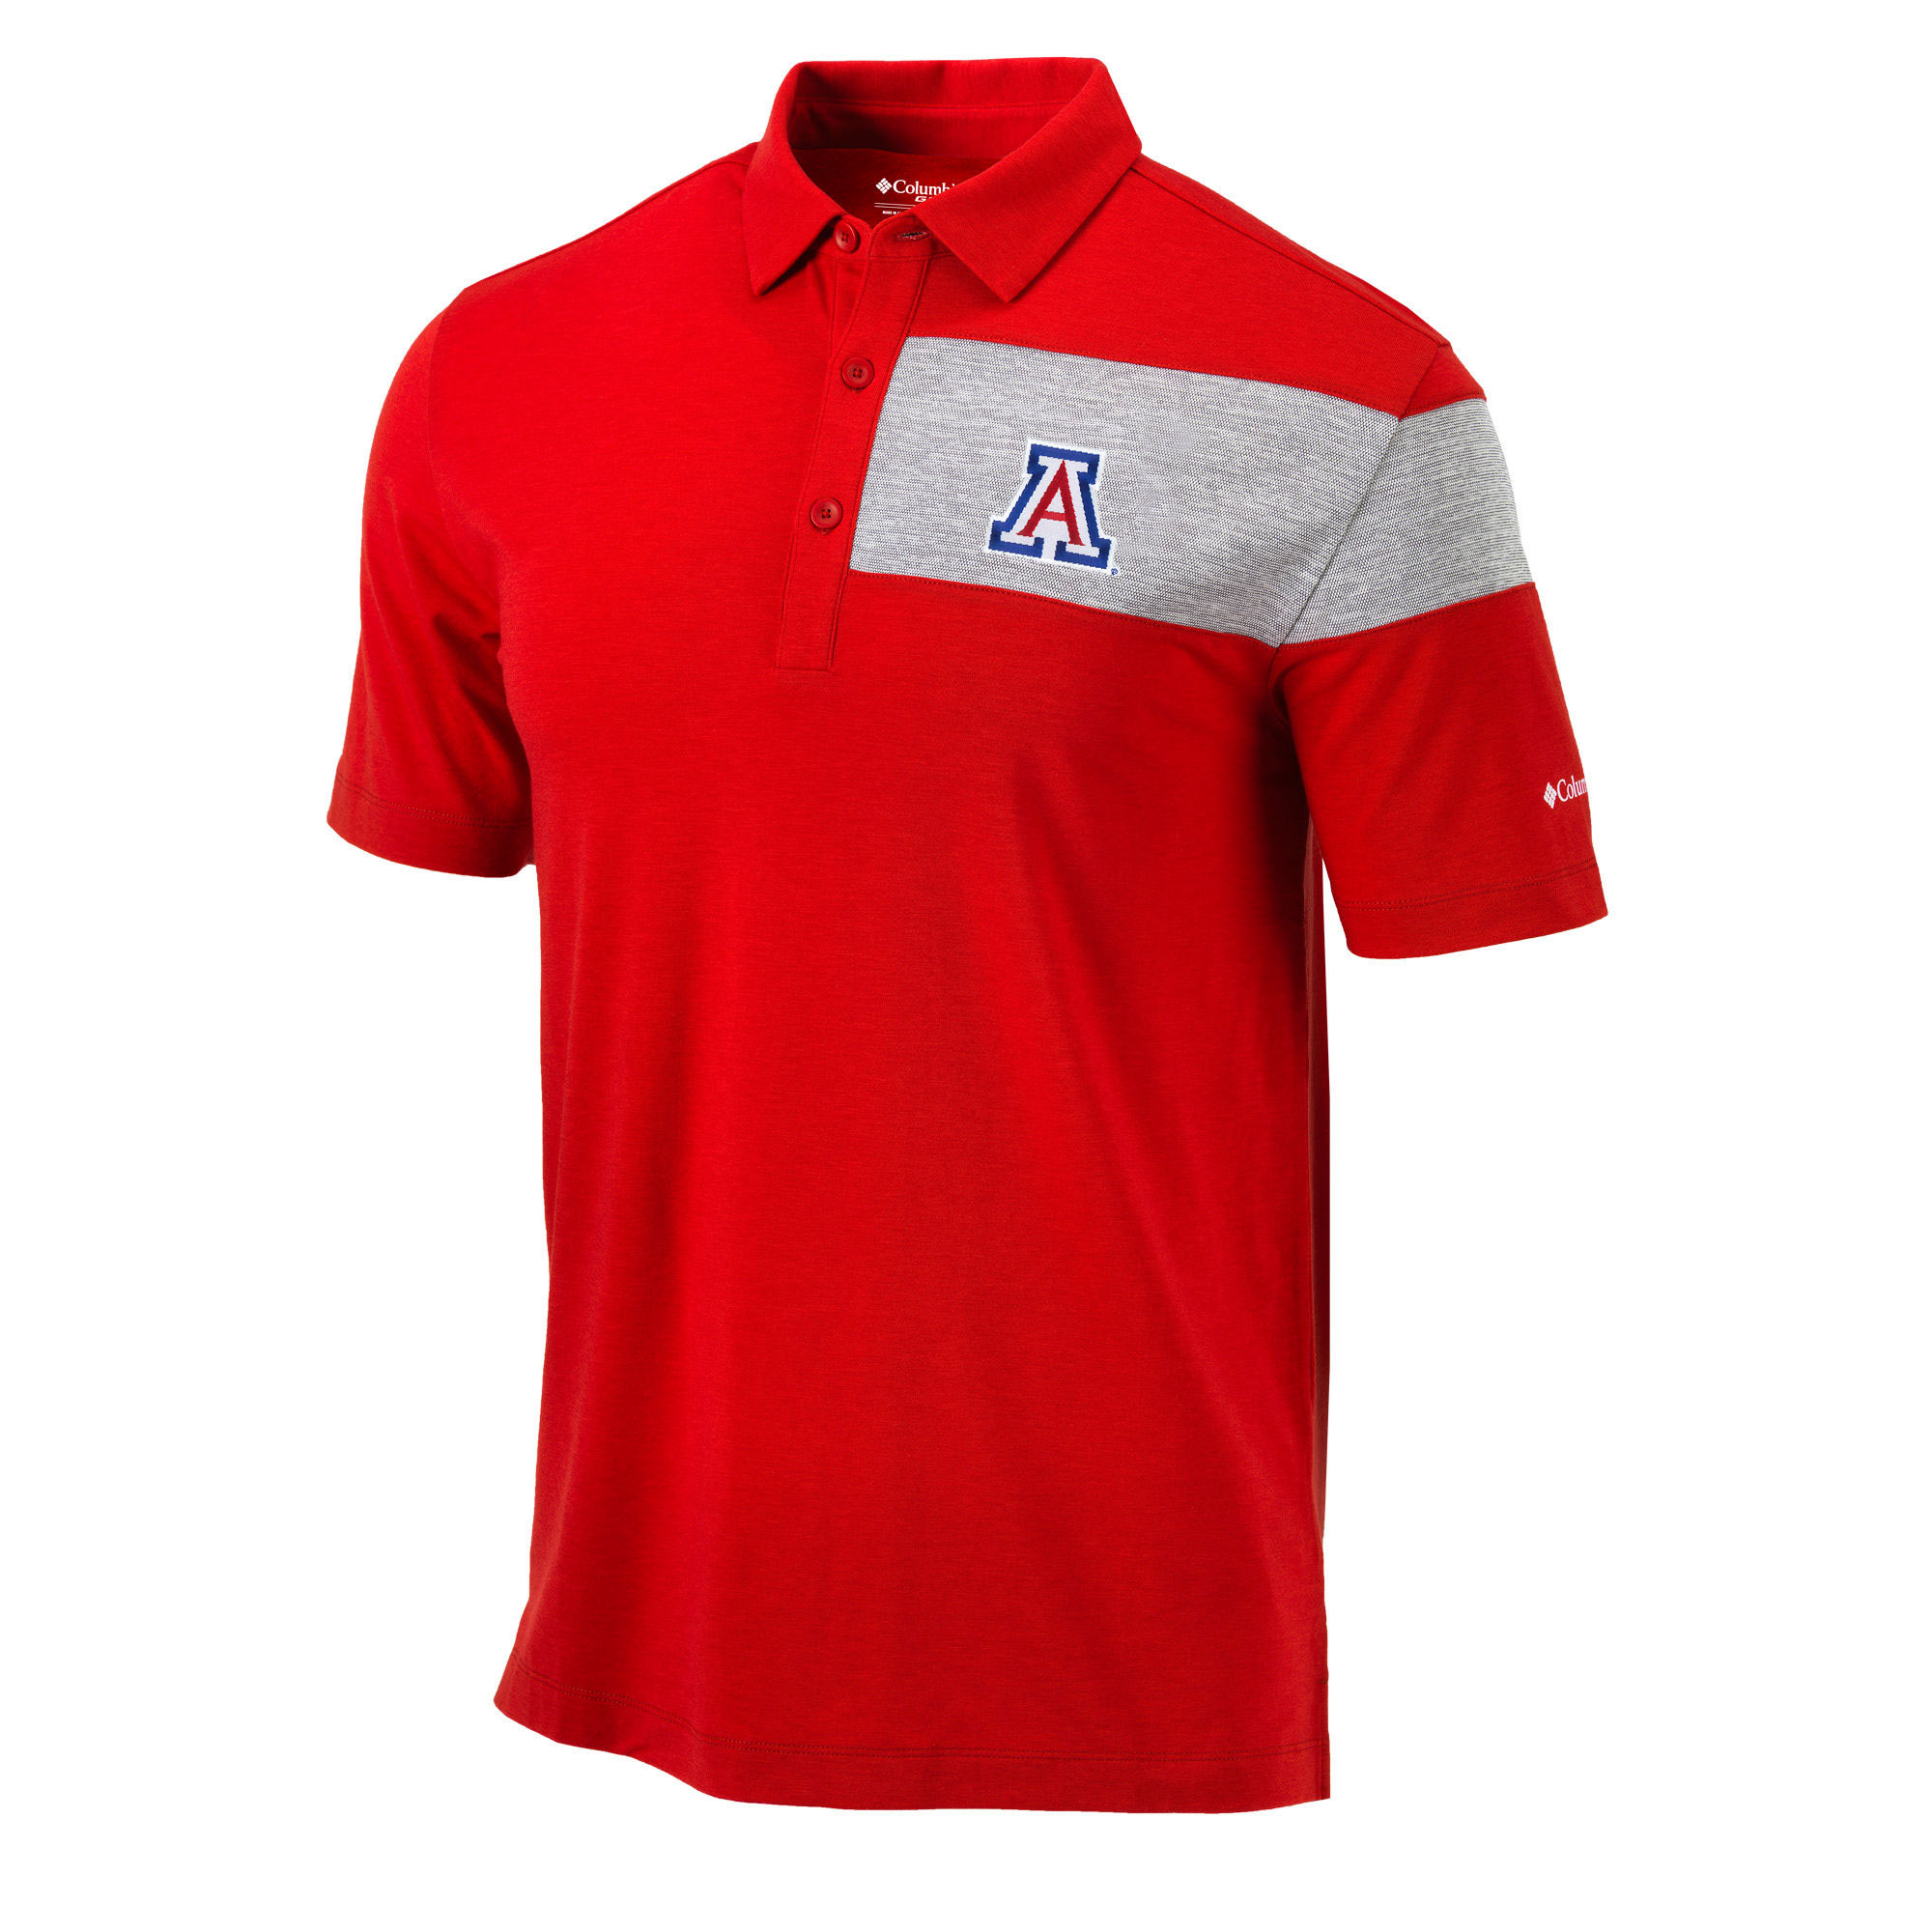 Image For Columbia: Arizona Omni-Wick Skins Polo - Red